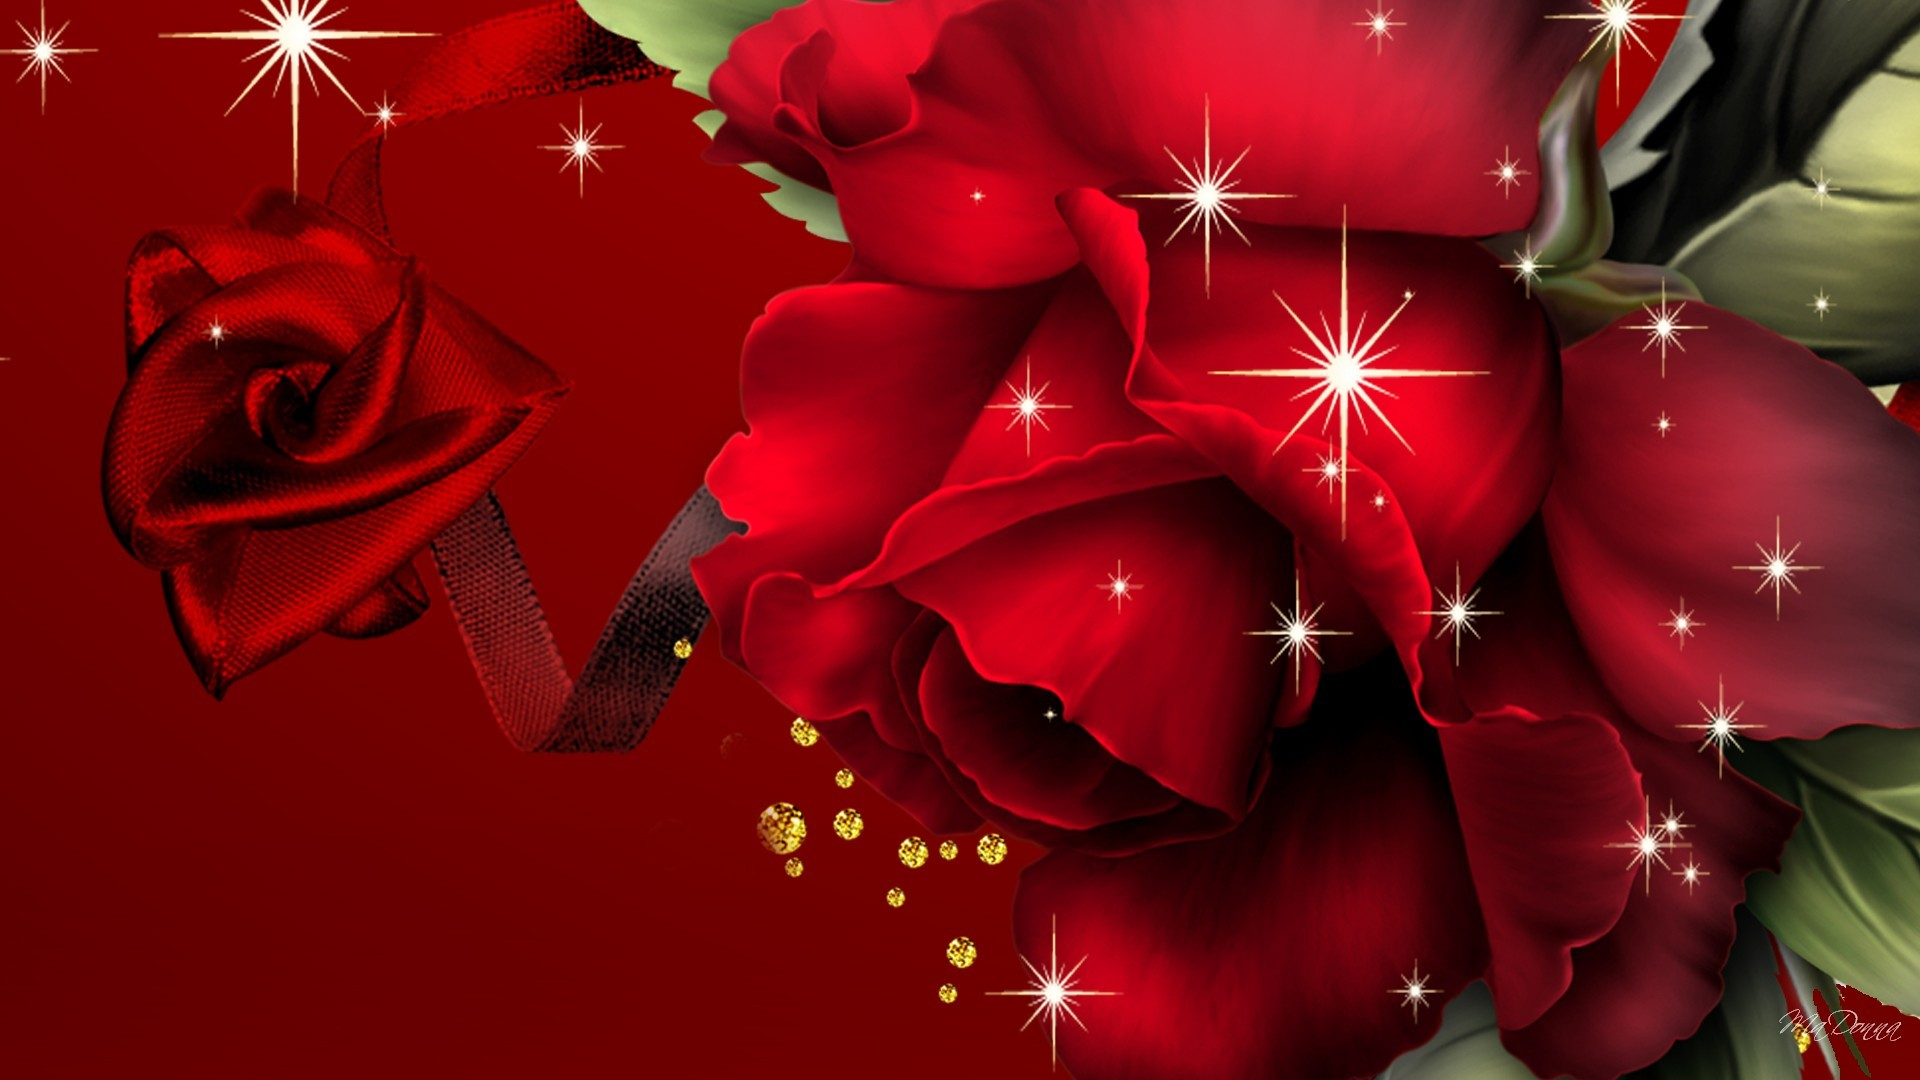 Roses Wallpaper 55 images